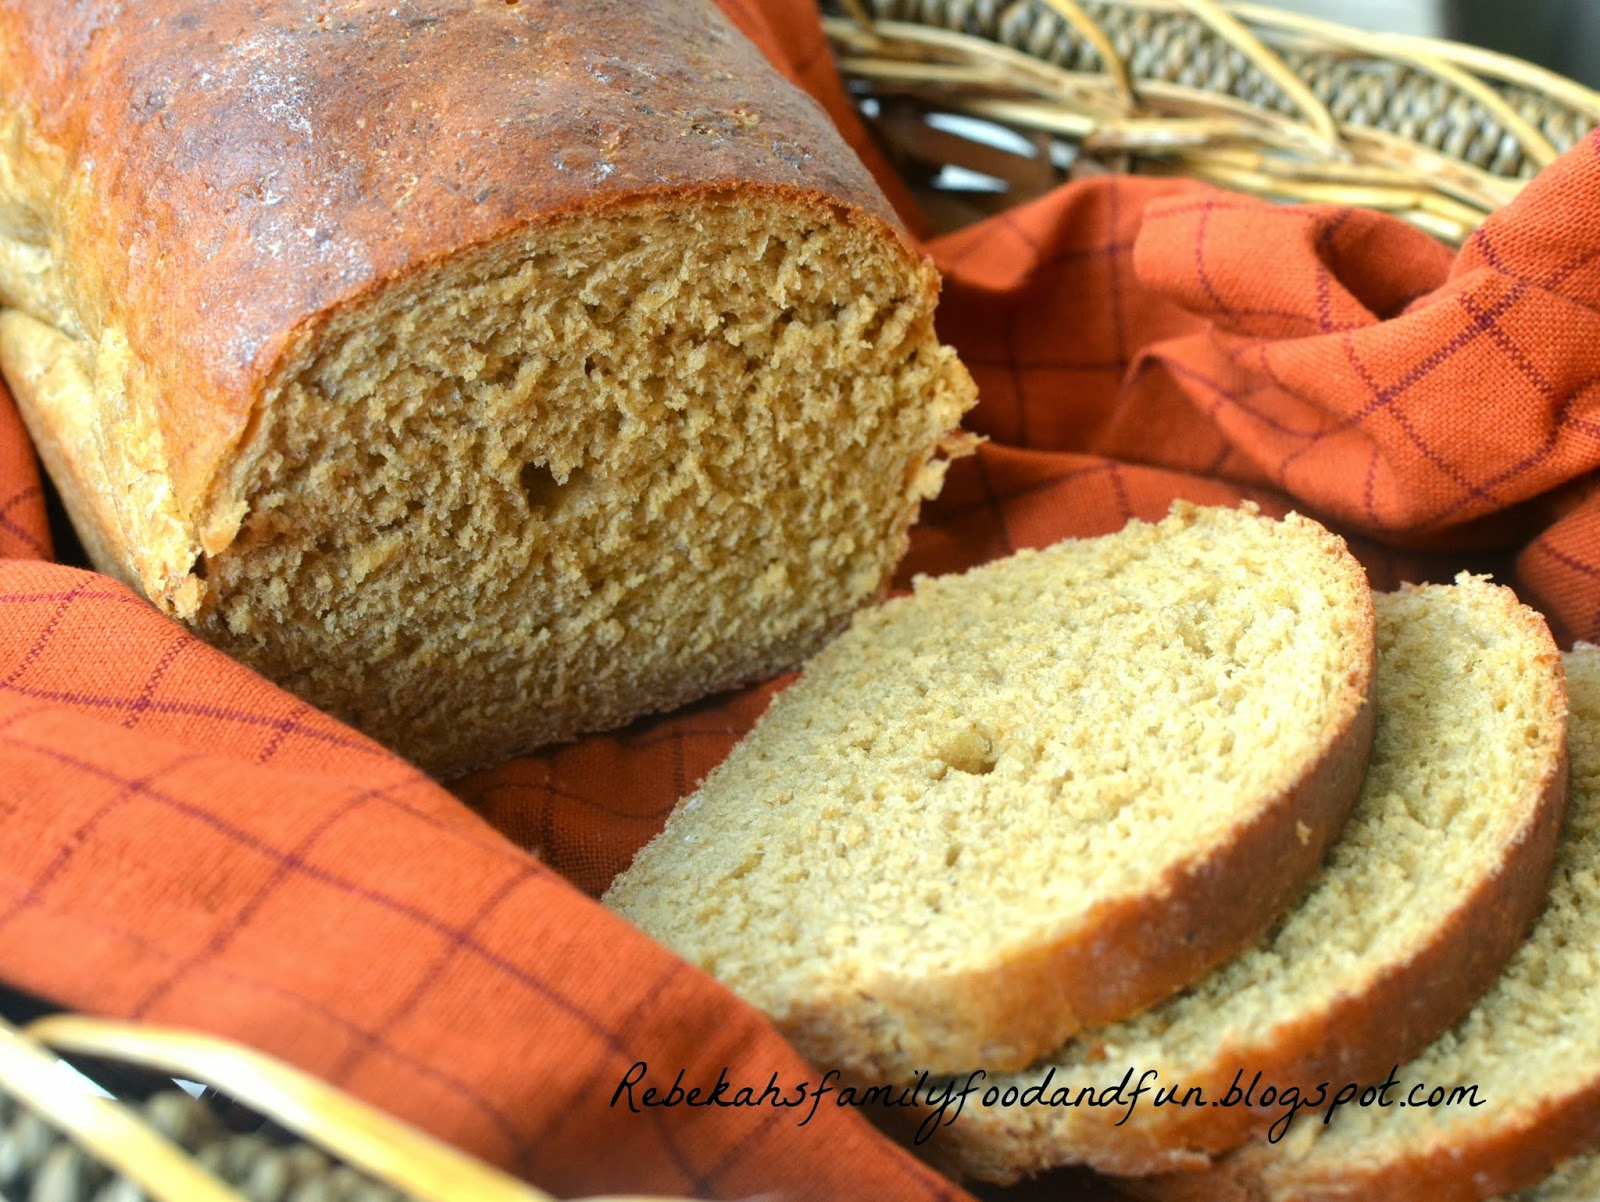 Family, Food, and Fun: Homemade Brown Bread